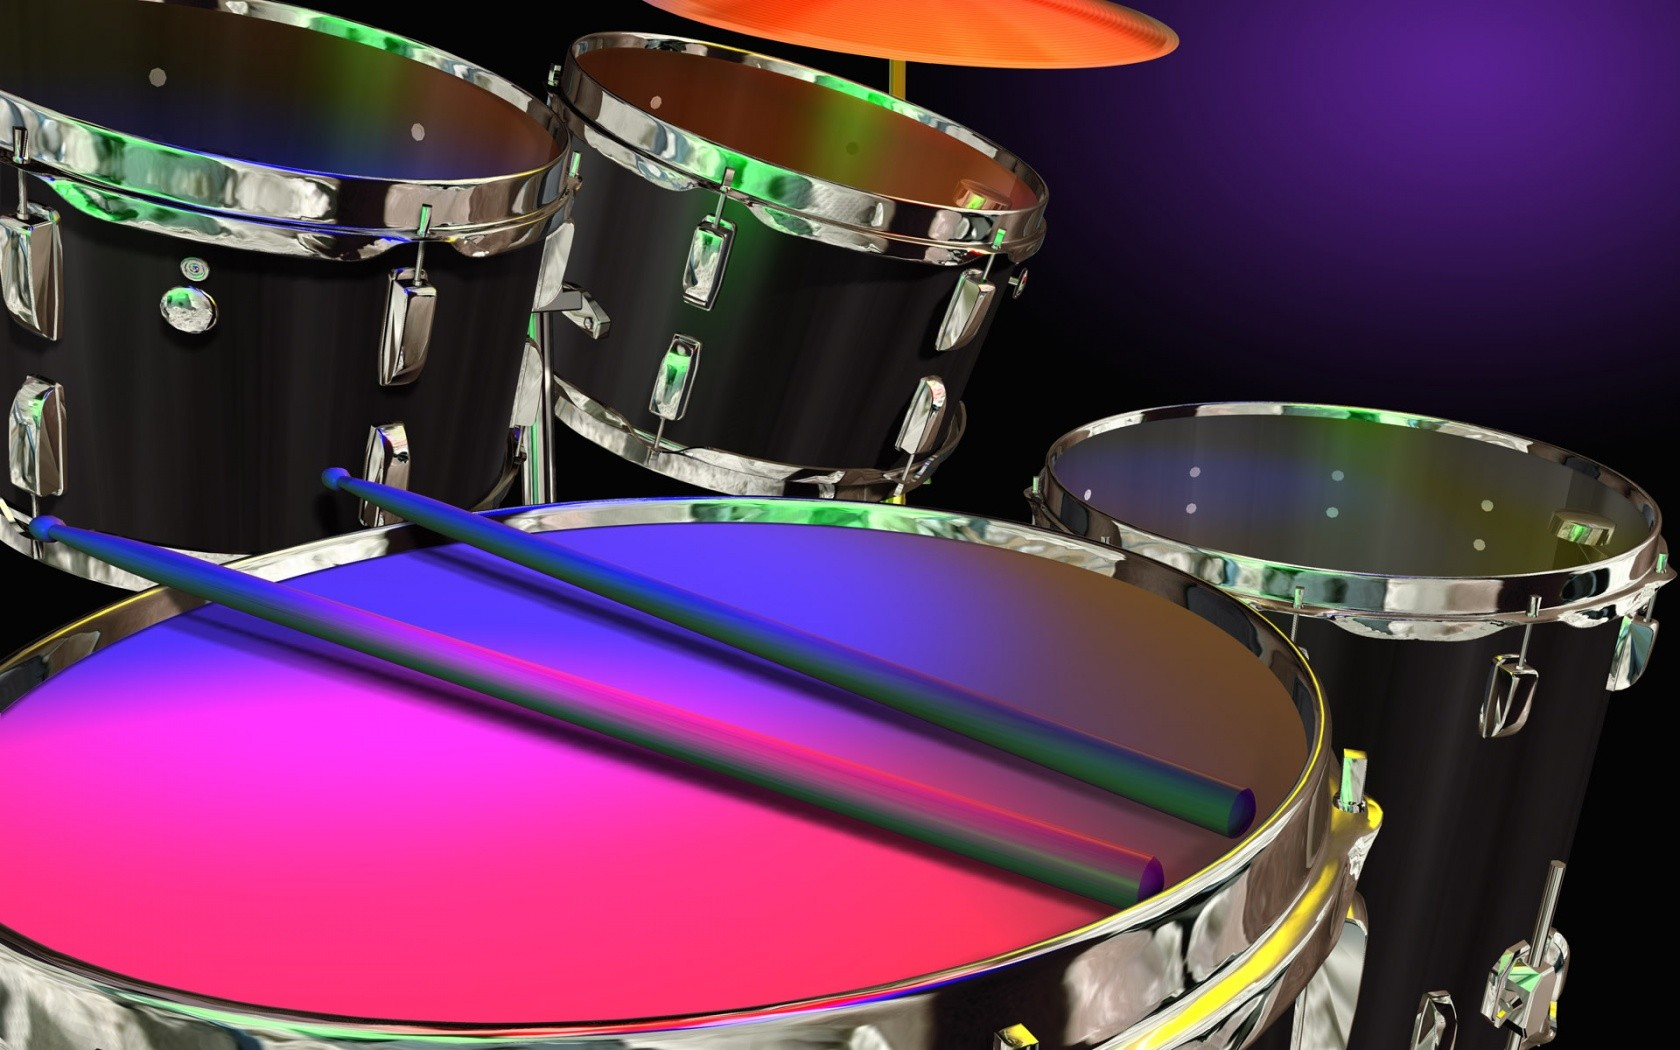 Love Music Android Wallpapers 960x854 Hd Wallpaper For: Drums Sfondo And Sfondi